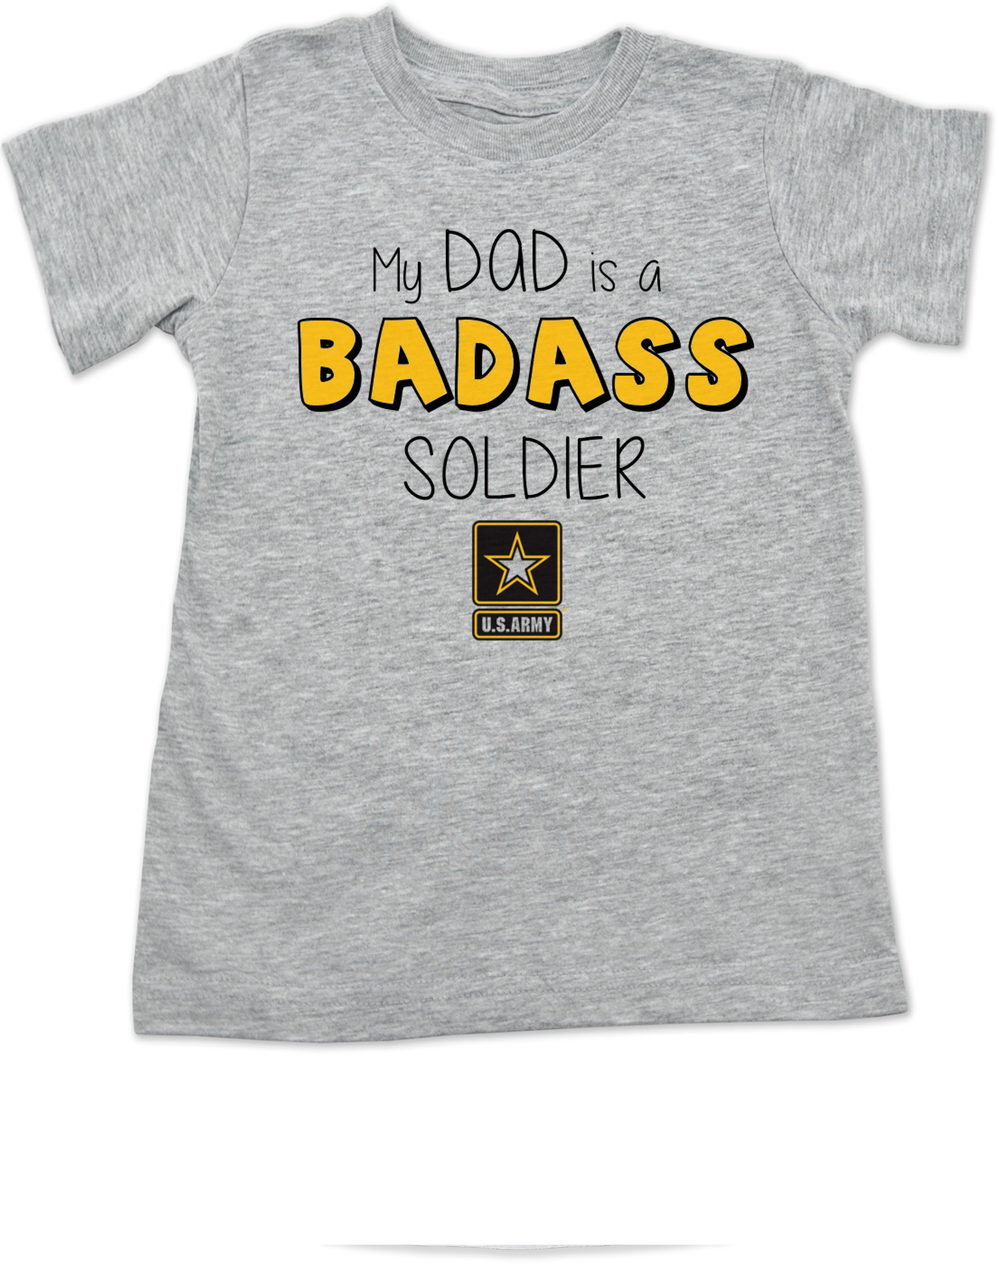 Badass mom dad toddler shirt for Custom military unit t shirts